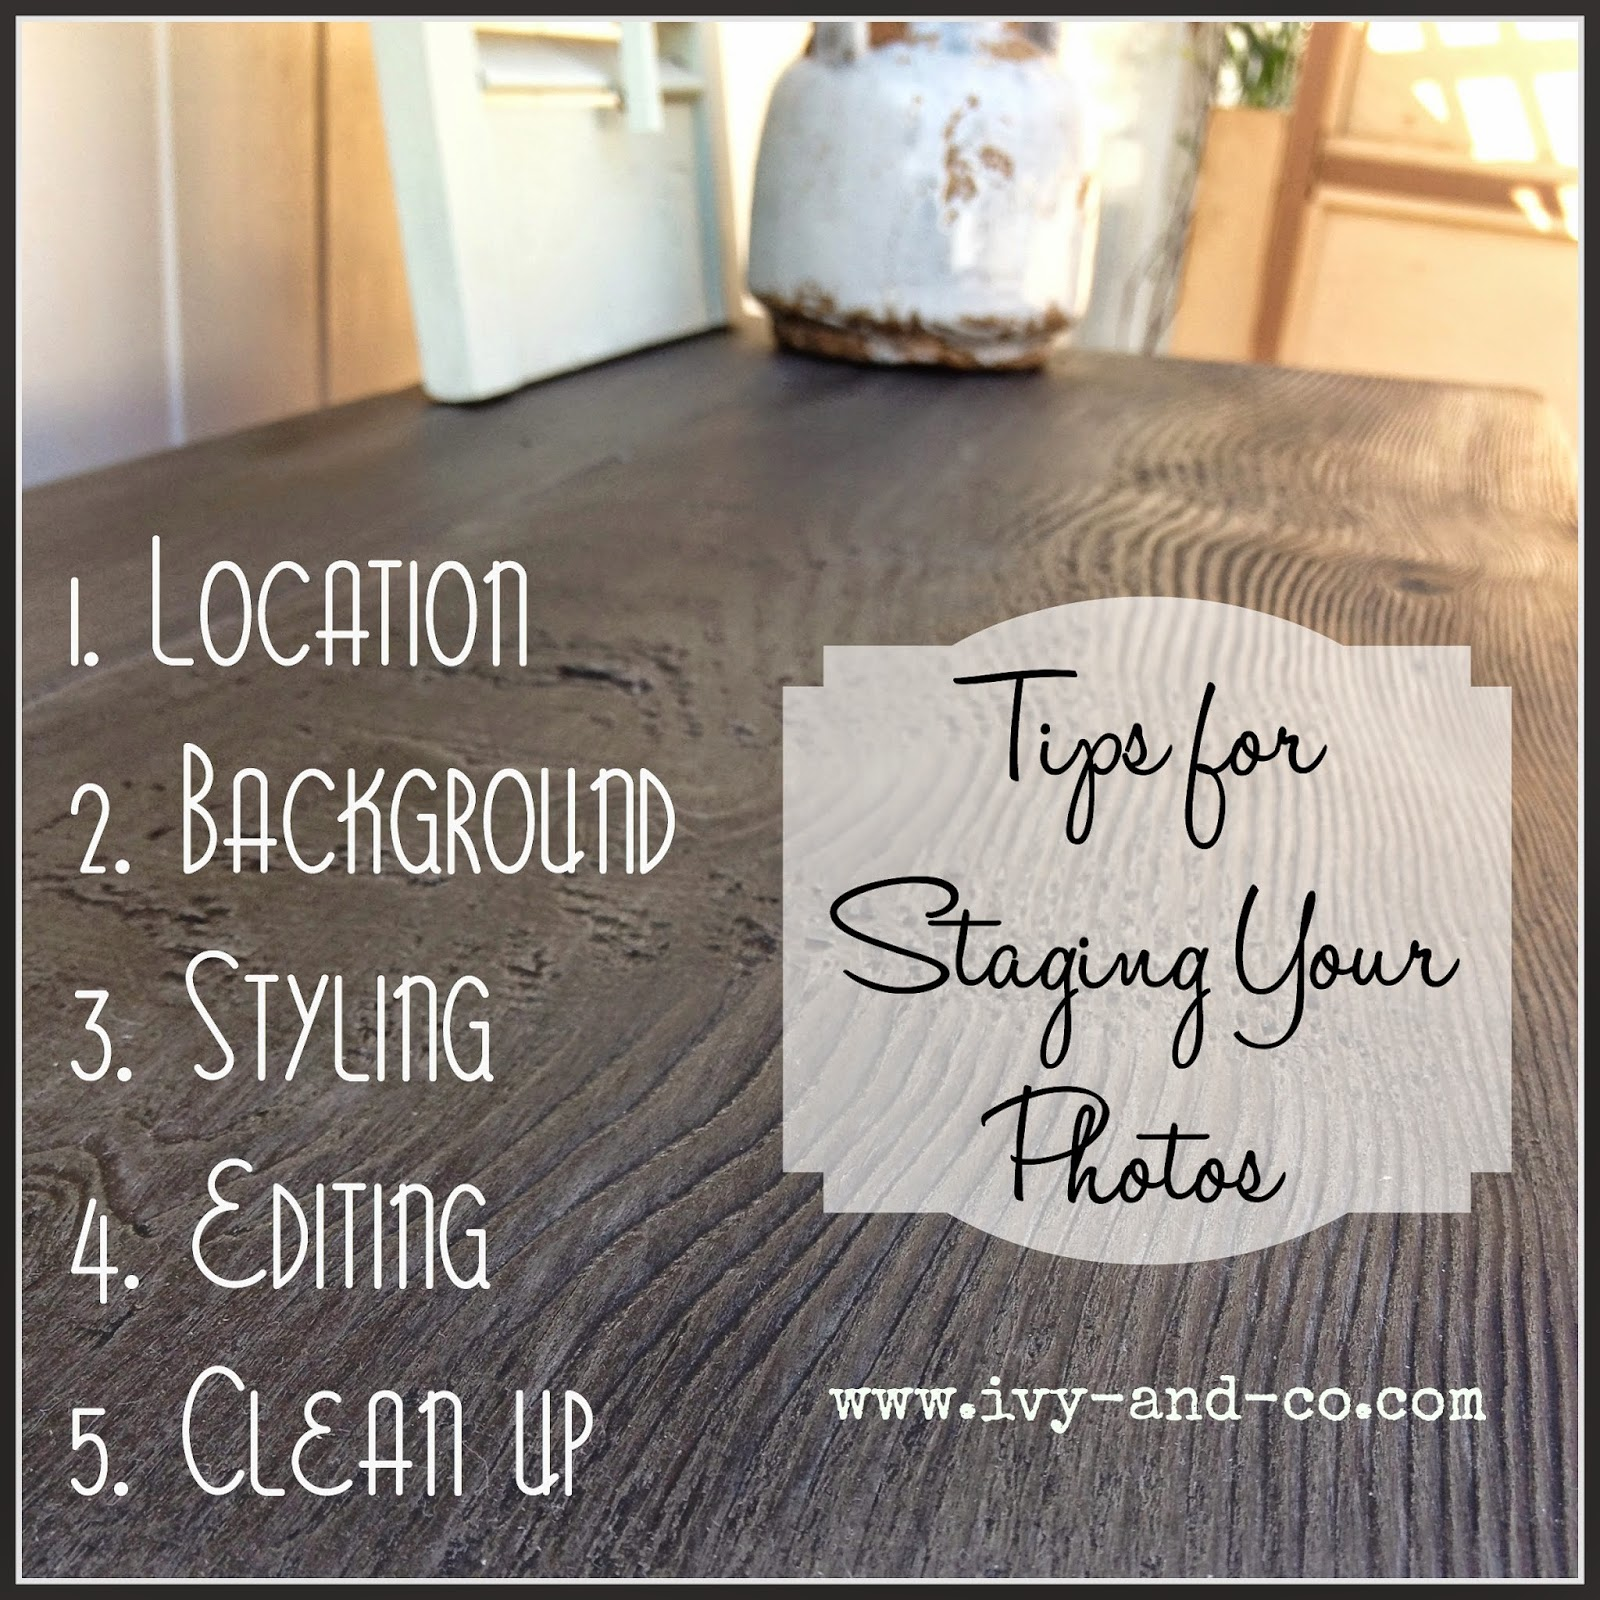 tips for staging your blog photos